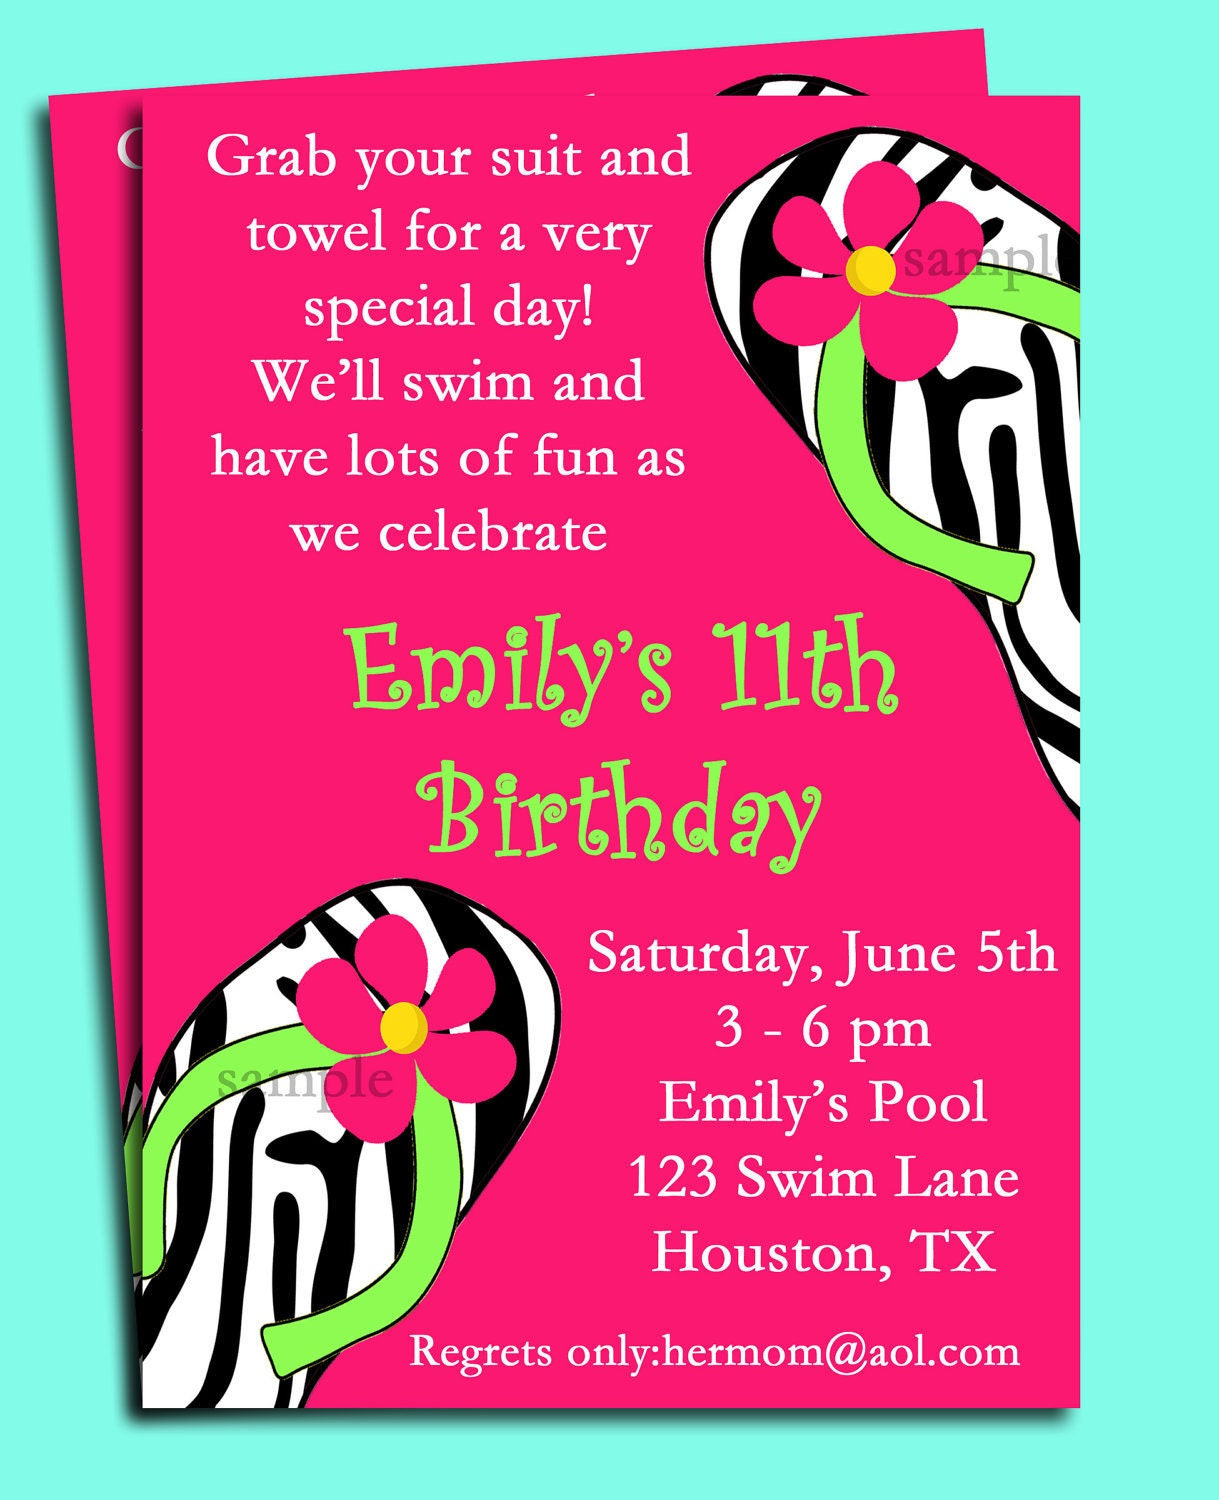 pool party invitation spa party invitation swim party, invitation samples